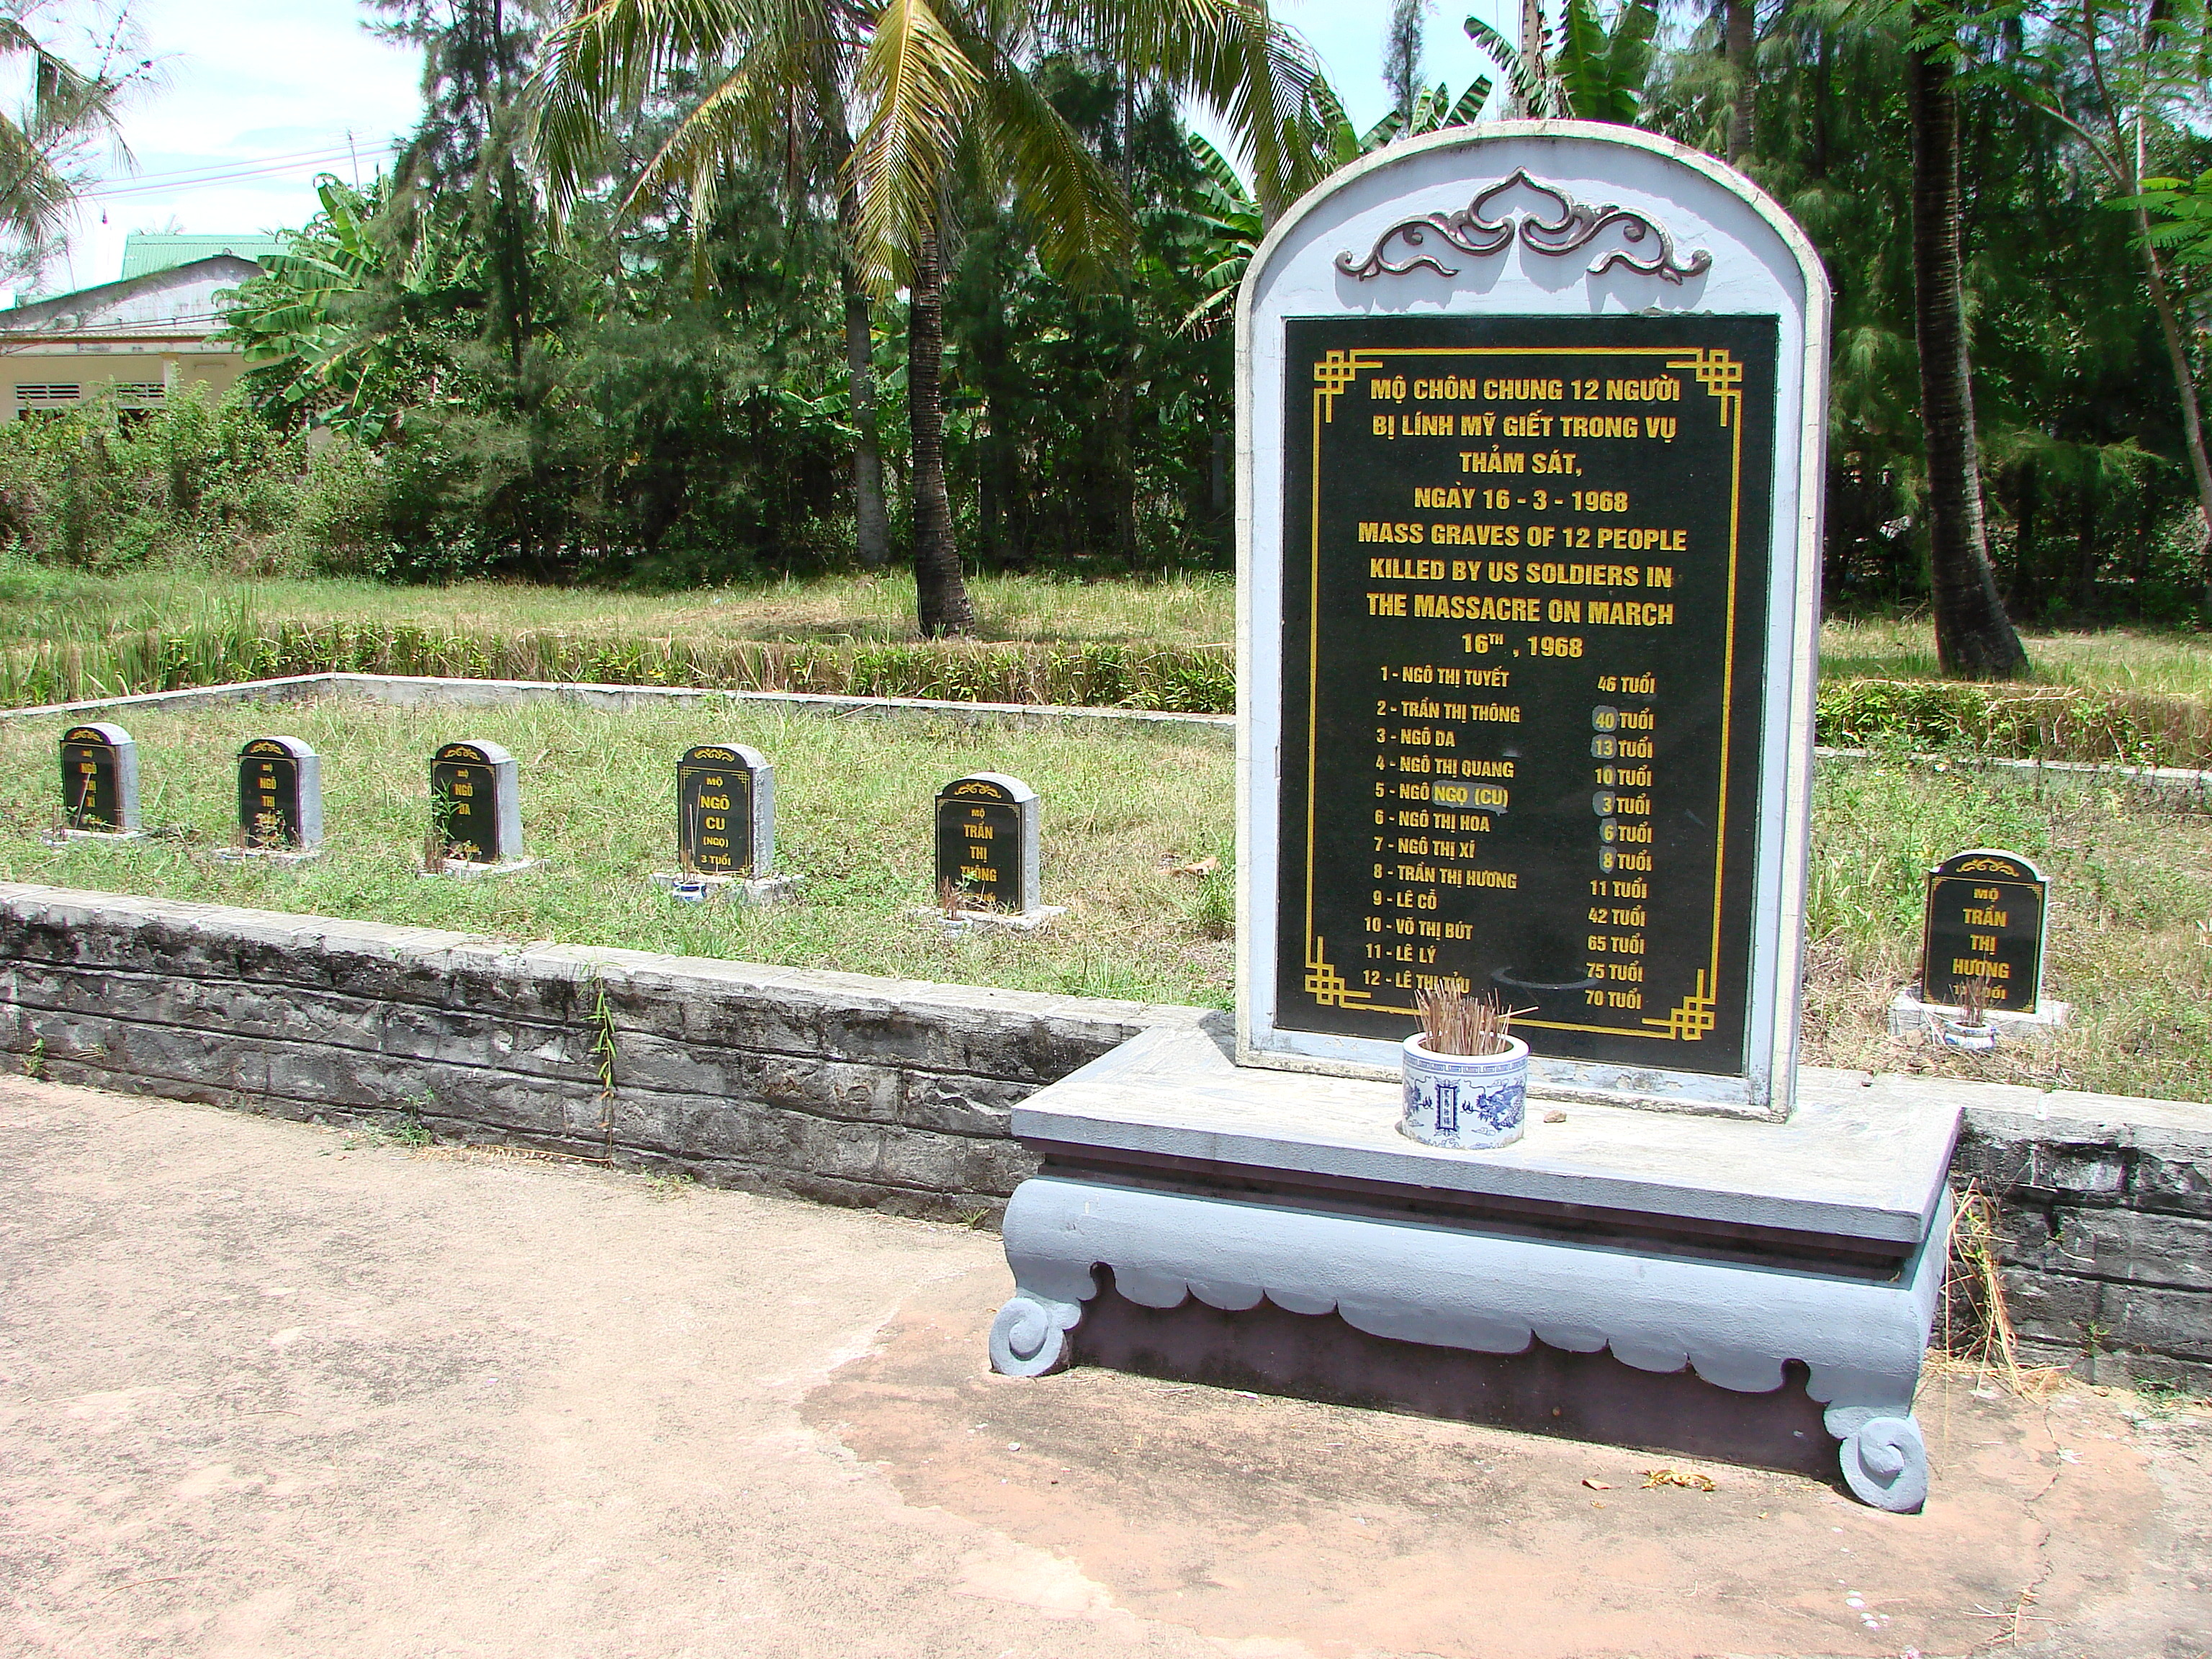 Mass grave for 12 victims of the My Lai massacre, 16 March 1968